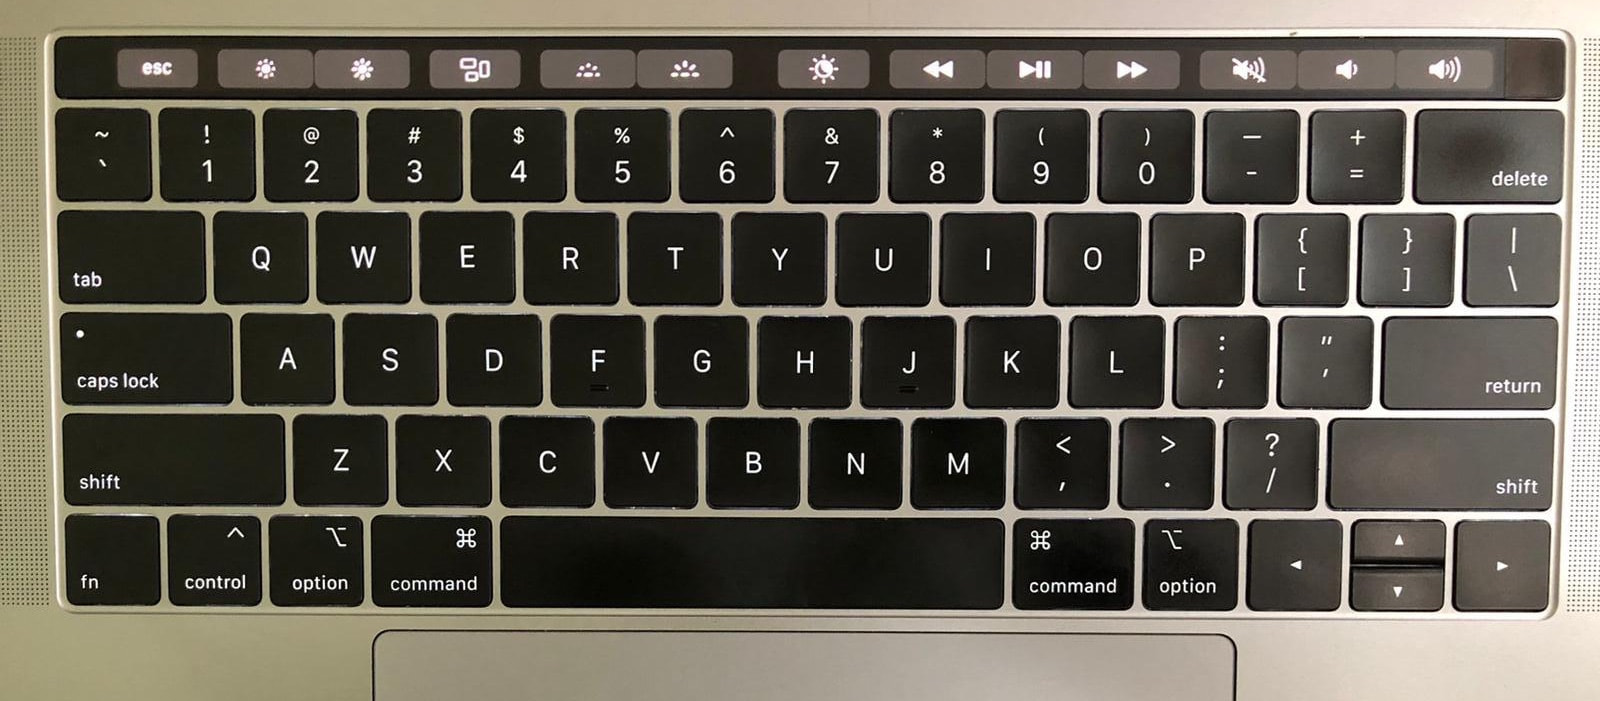 Mac keyboard.